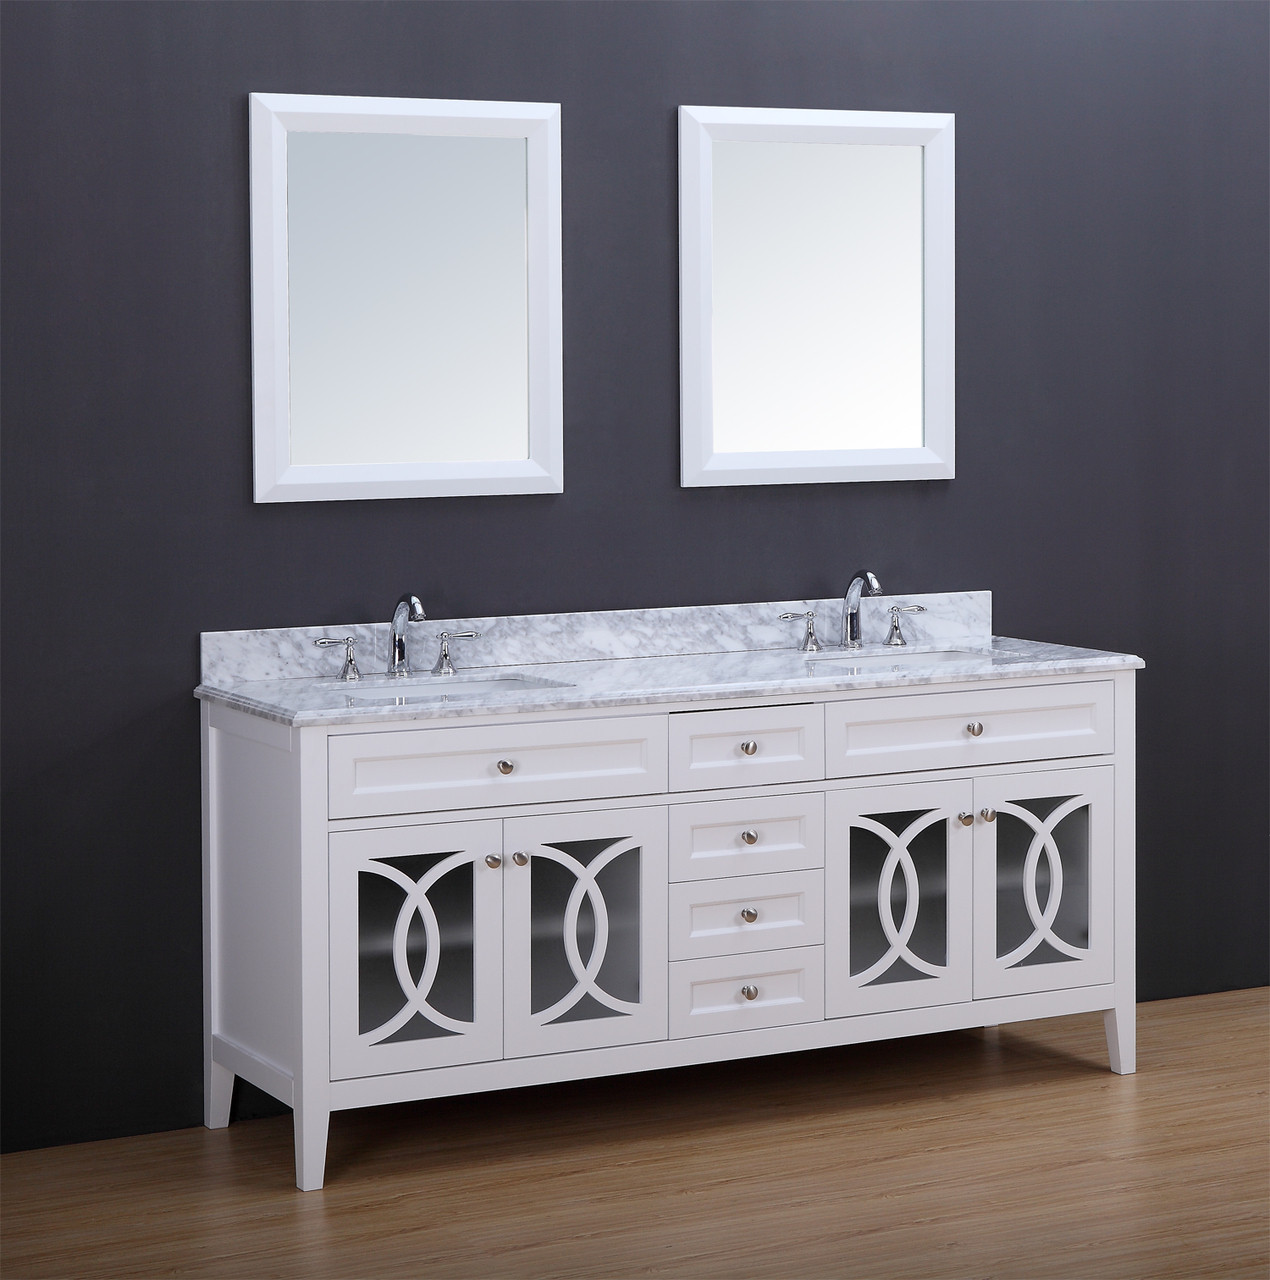 60 double sink bathroom vanity. Casa 60  Double Sink Bathroom Vanity York Taps